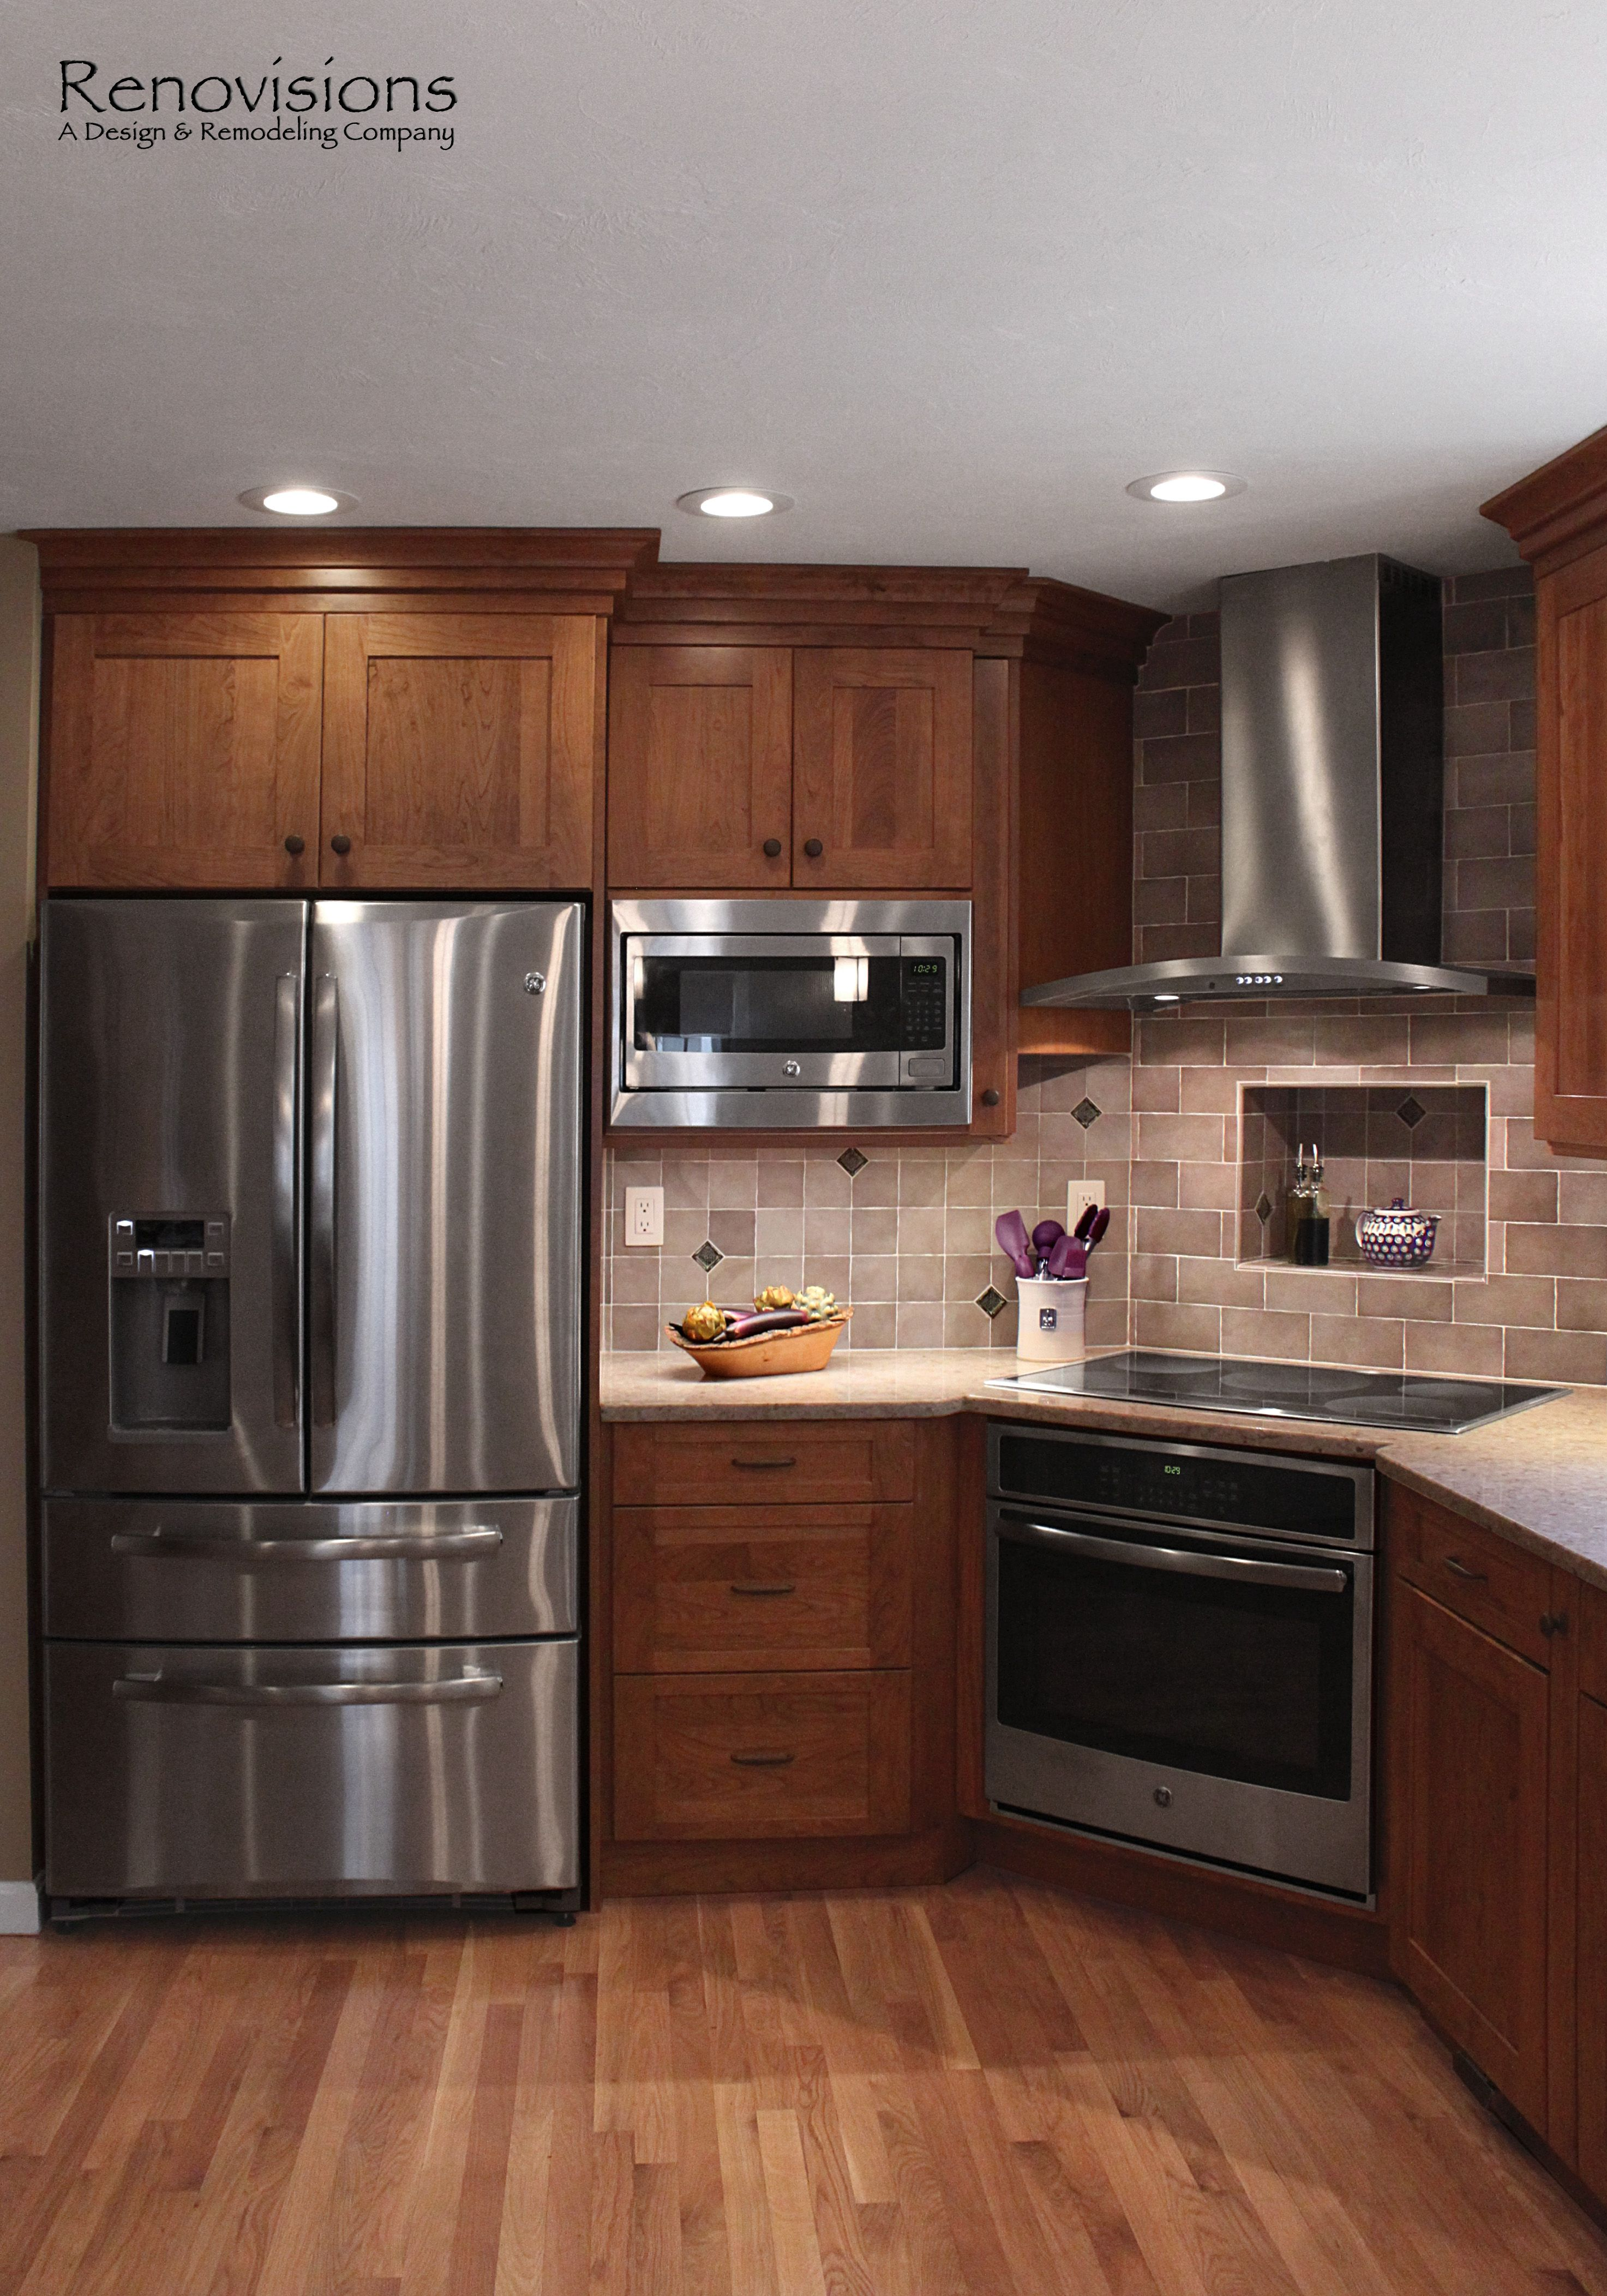 kitchen remodel app Kitchen remodel by Renovisions Induction cooktop stainless steel appliances cherry cabinets shaker